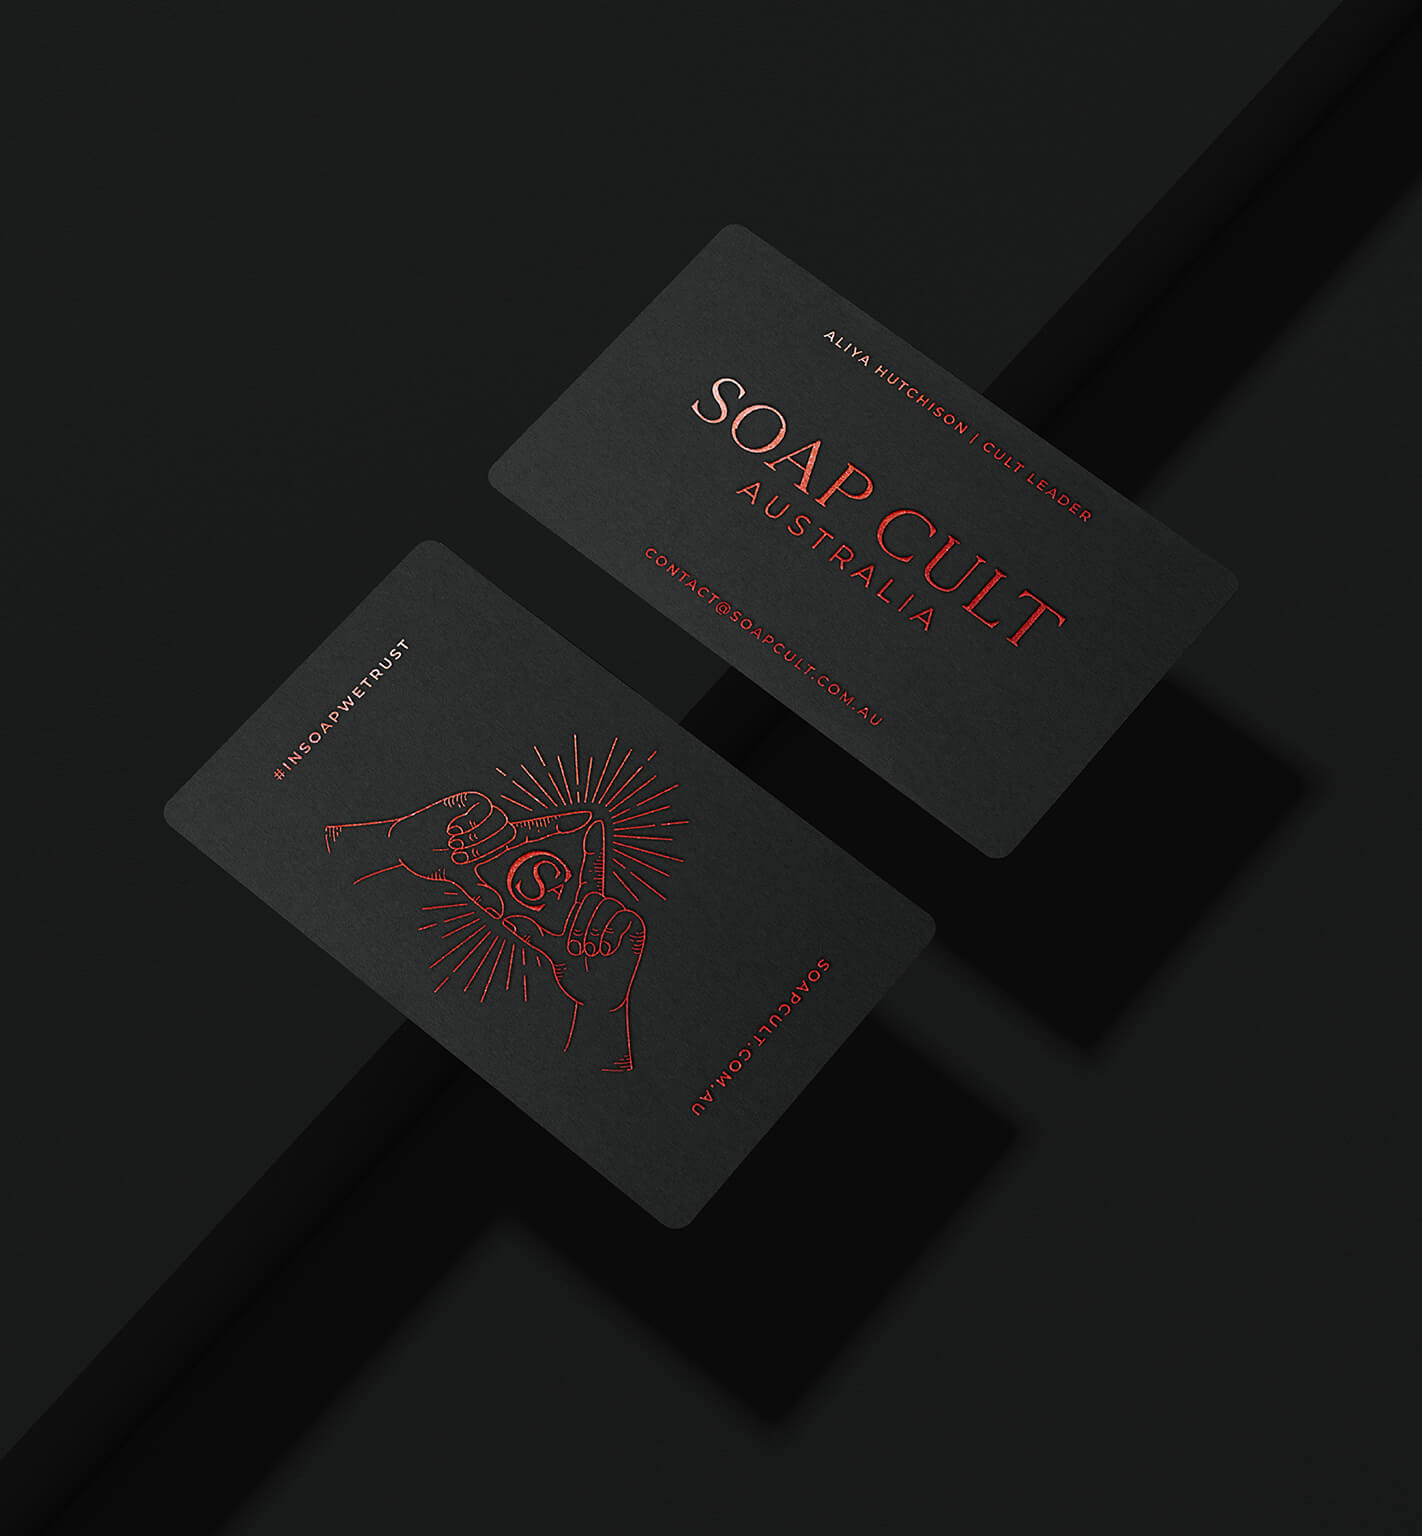 soap cult australia client business cards of black card and red foil